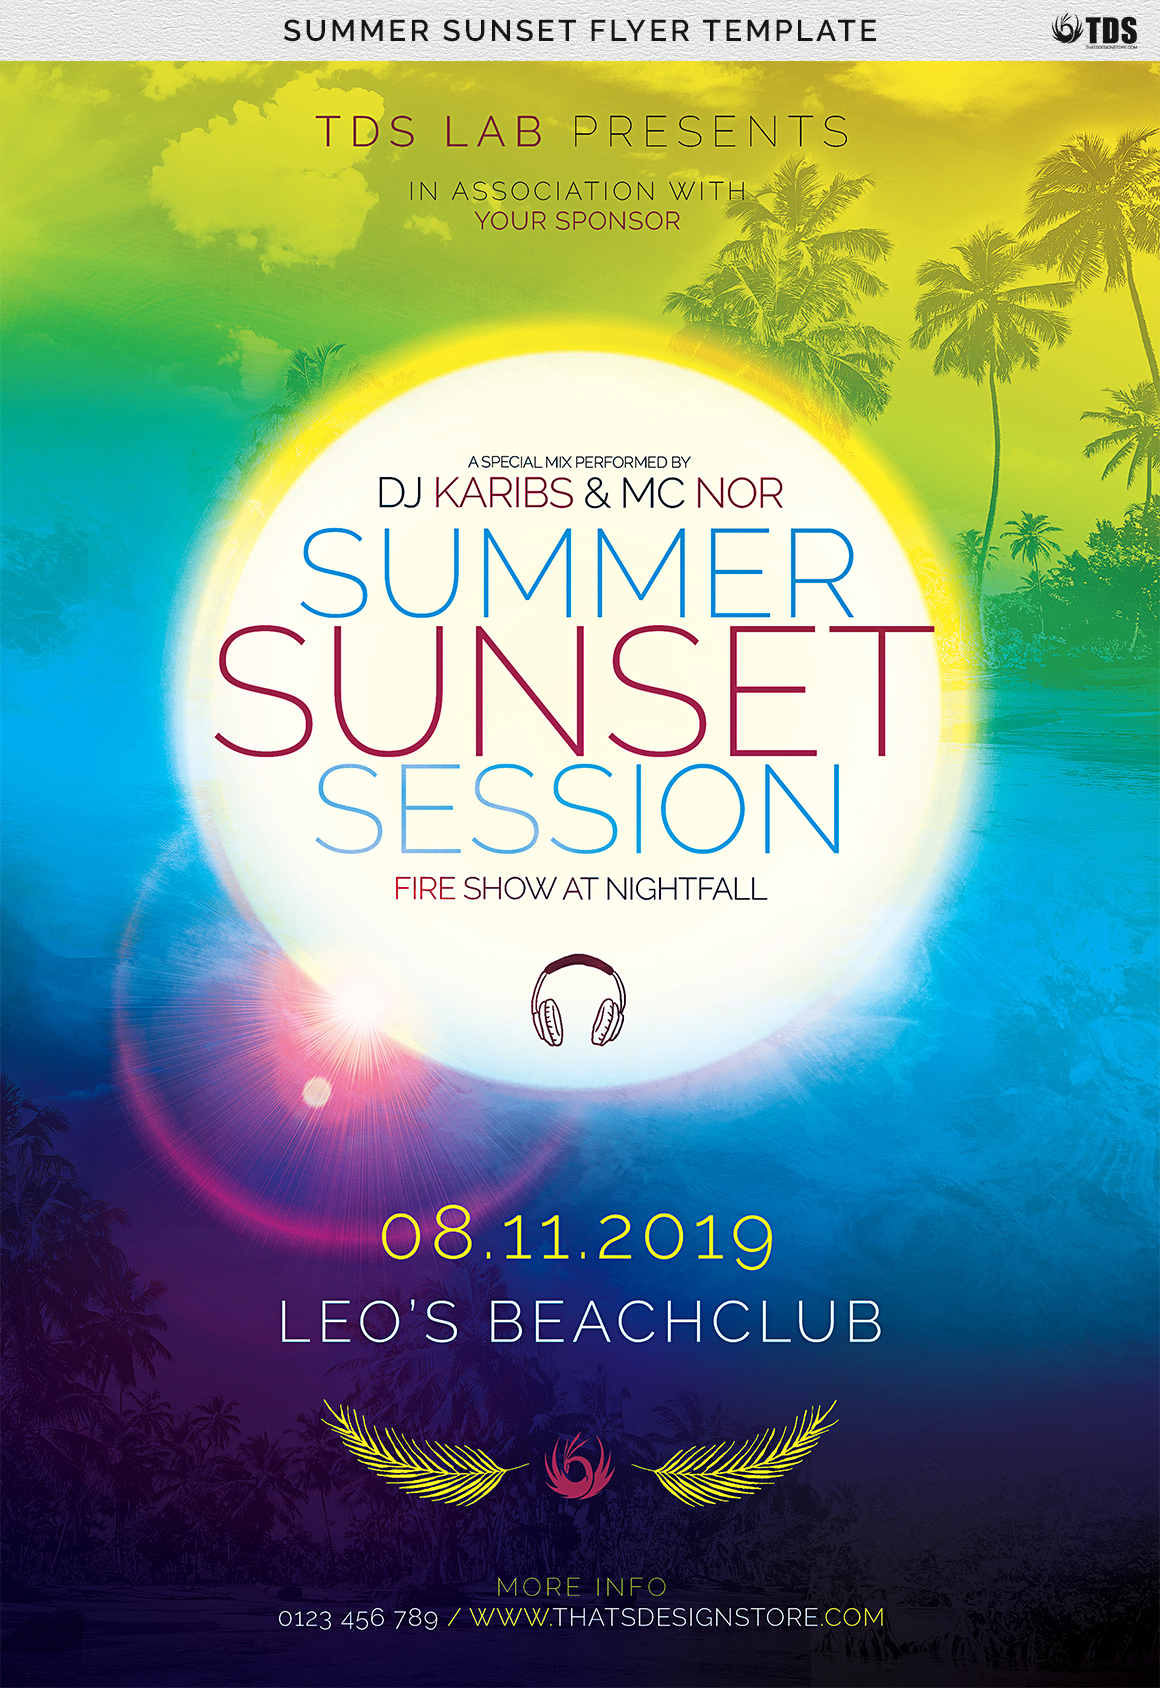 Summer Sunset Flyer Template example image 7